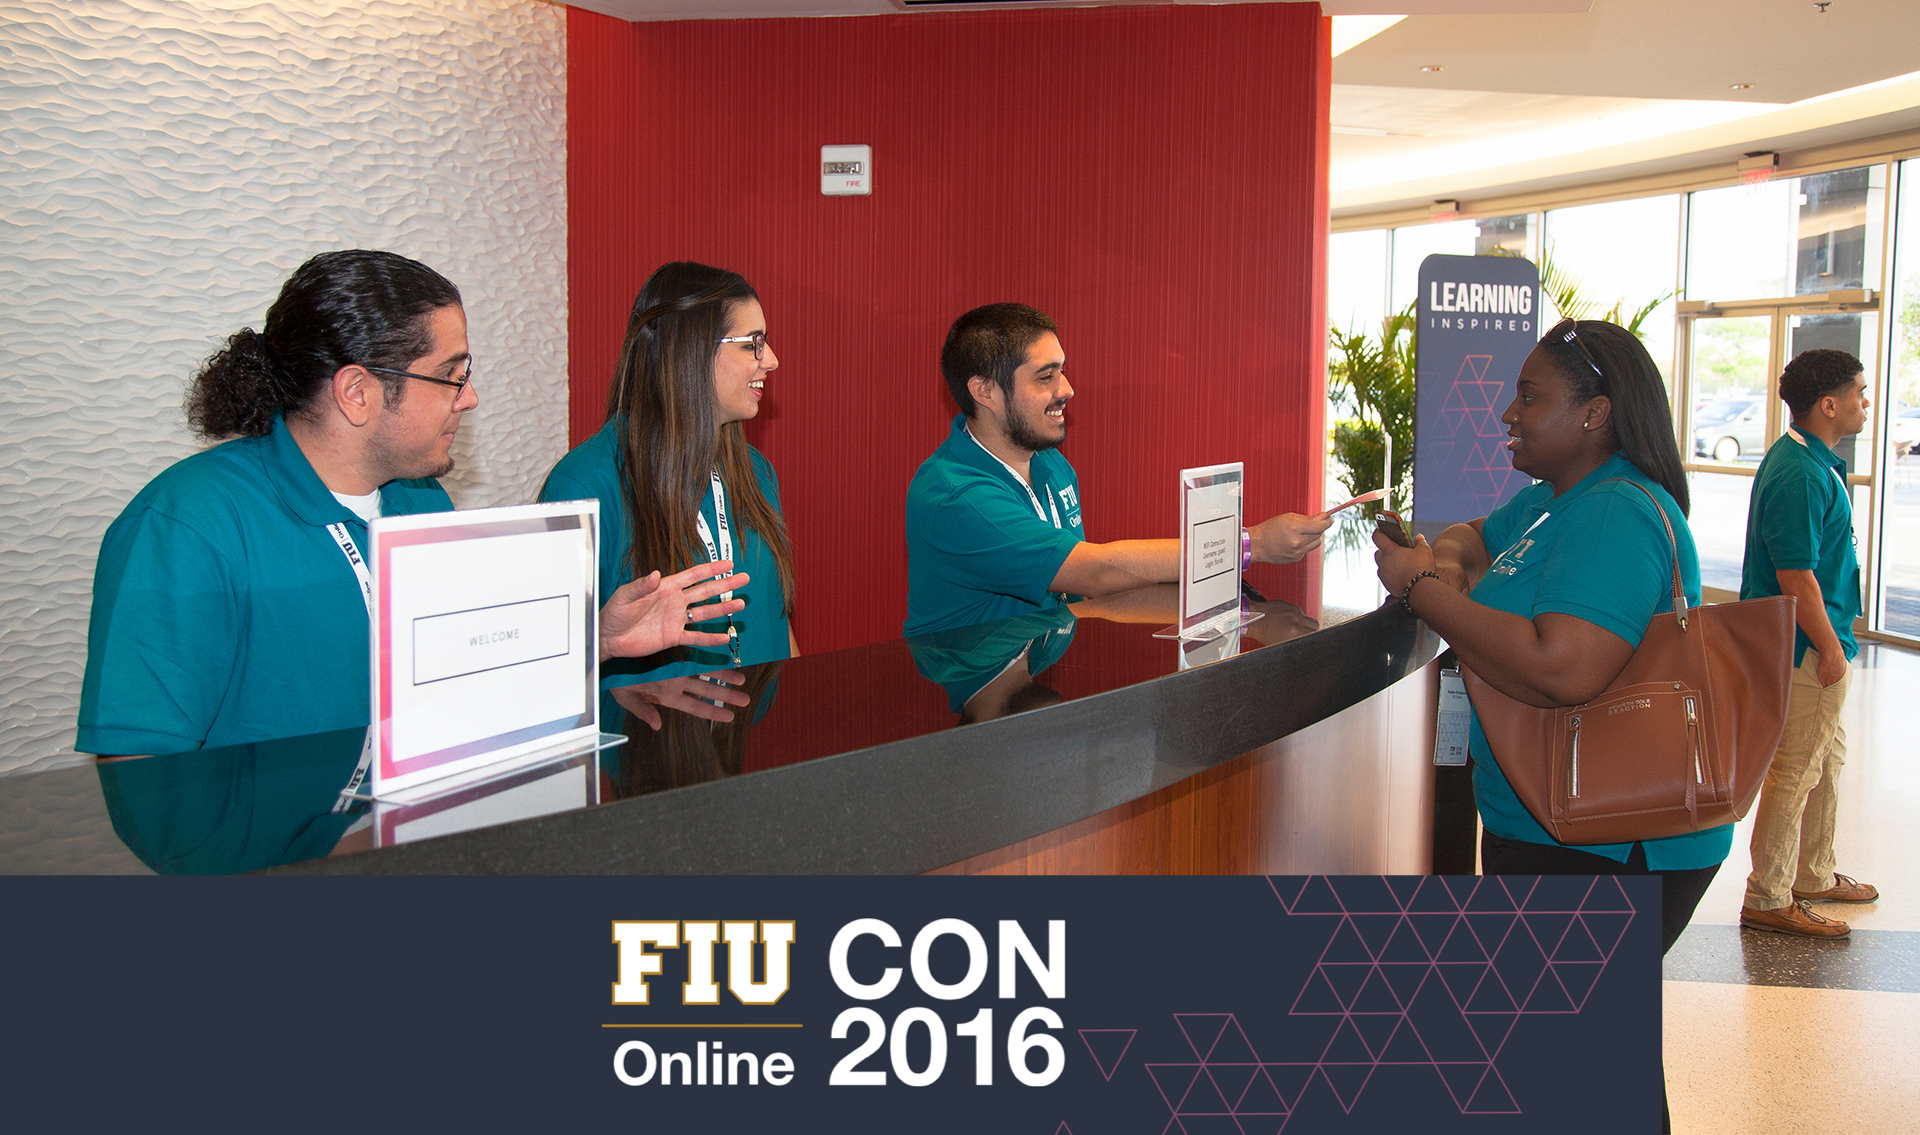 23.jpg FIU Online conference photos